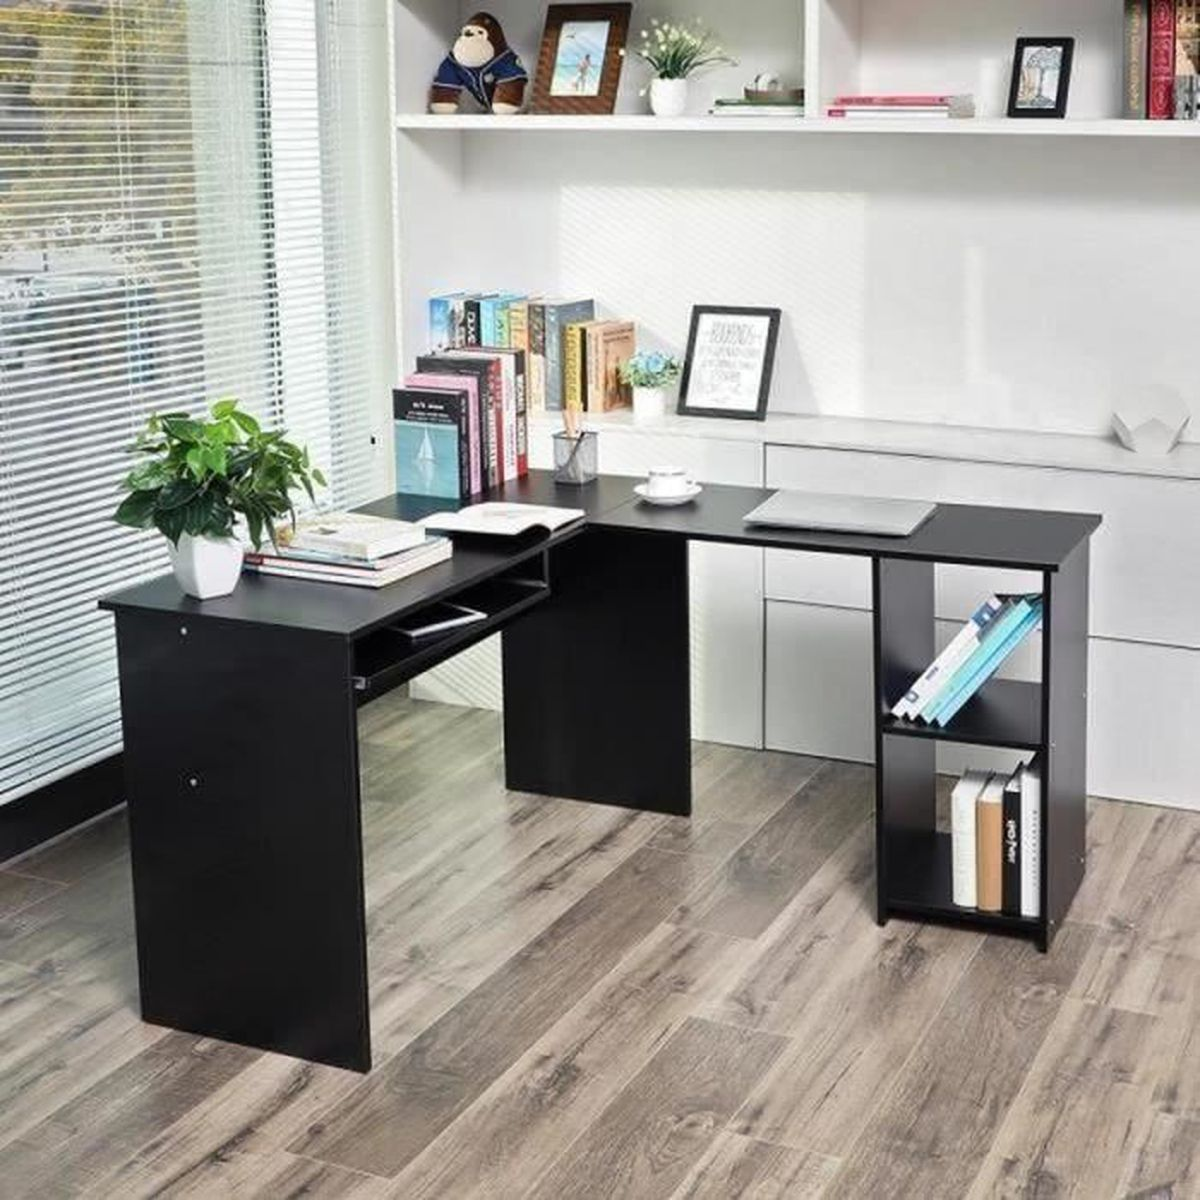 songmics bureau informatique table informatique meuble de bureau pour ordinateur noir lcd810b. Black Bedroom Furniture Sets. Home Design Ideas